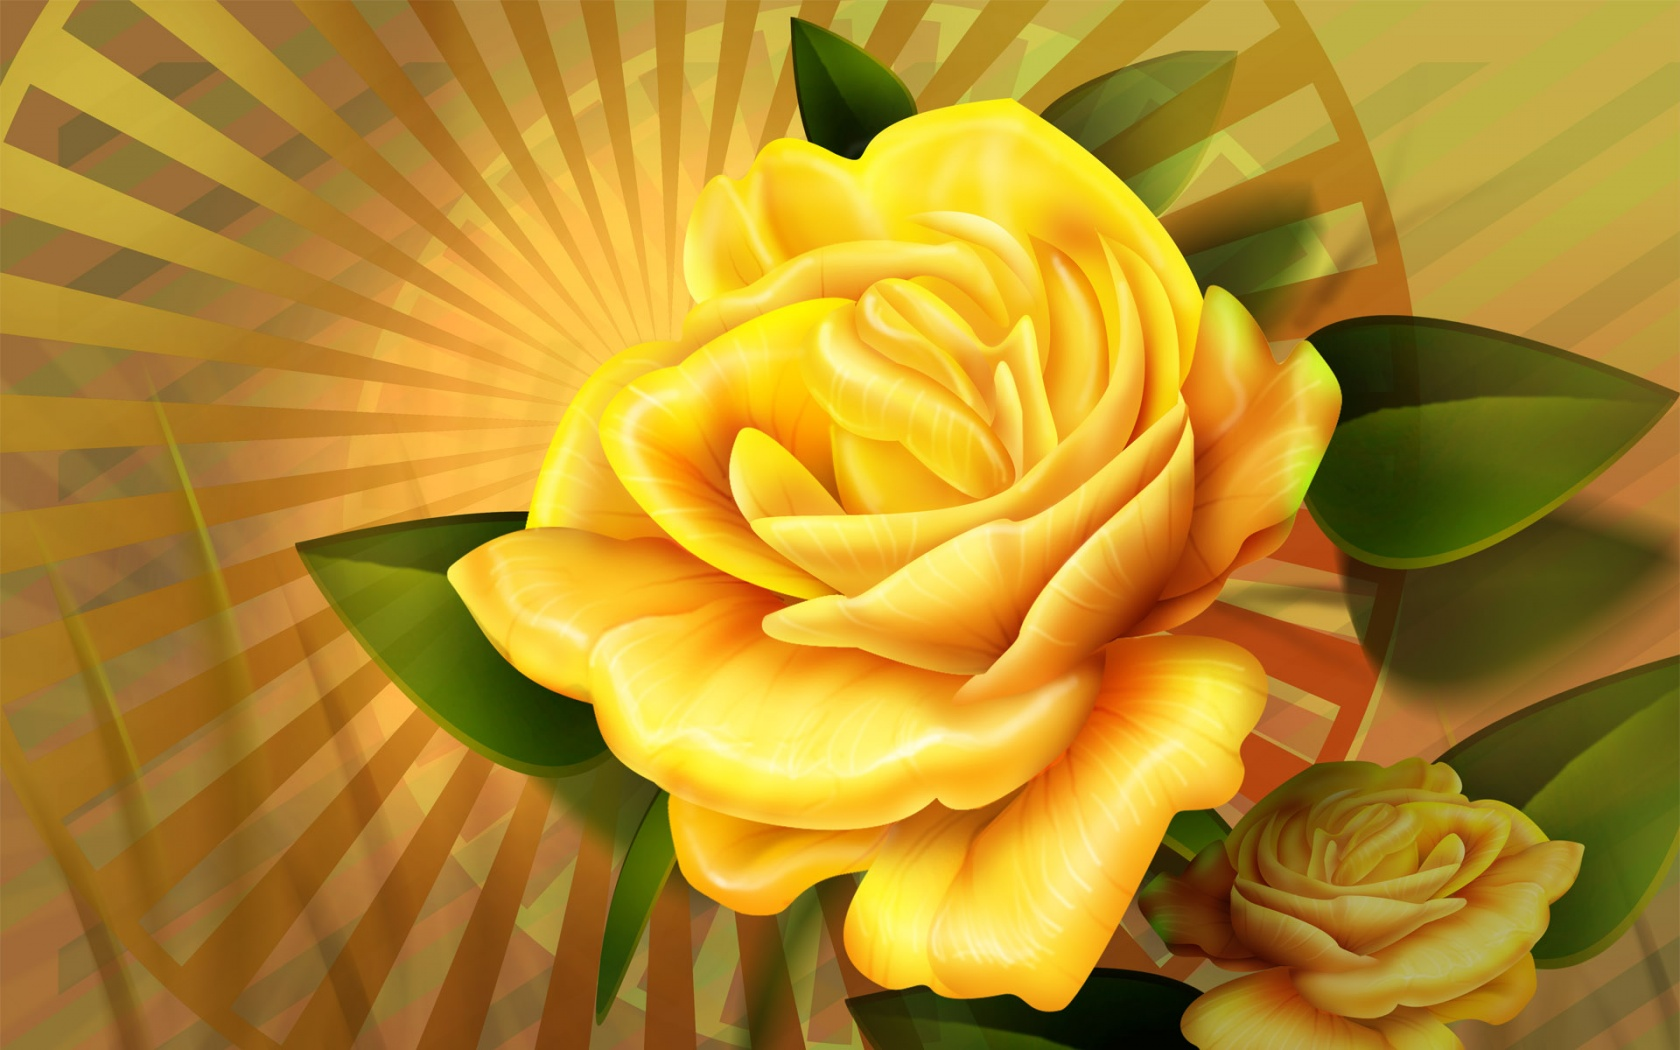 Free Download Yellow Rose Wallpapers Hd Wallpapers 1680x1050 For Your Desktop Mobile Tablet Explore 76 Wallpaper Yellow Rose Vintage Yellow Rose Wallpaper Screensavers And Wallpaper Yellow Roses